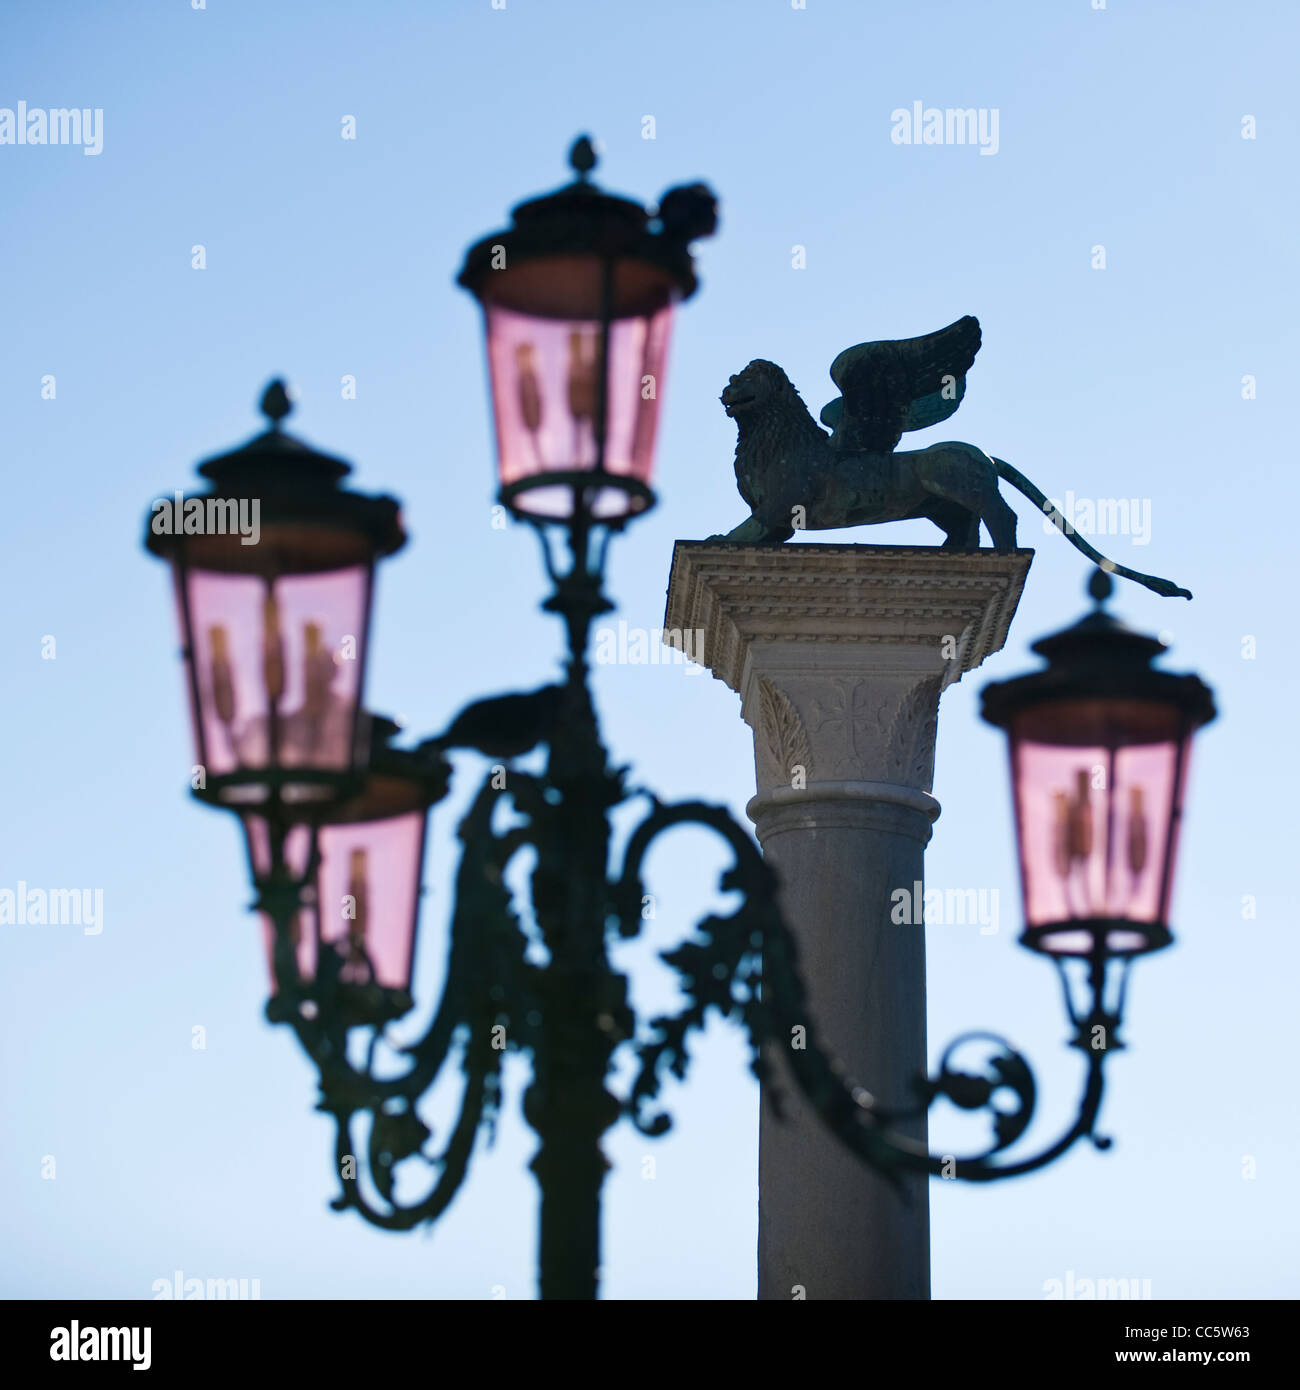 Streetlamp with pigeons, seagull and Lion of St Mark's Column in the Background - Stock Image